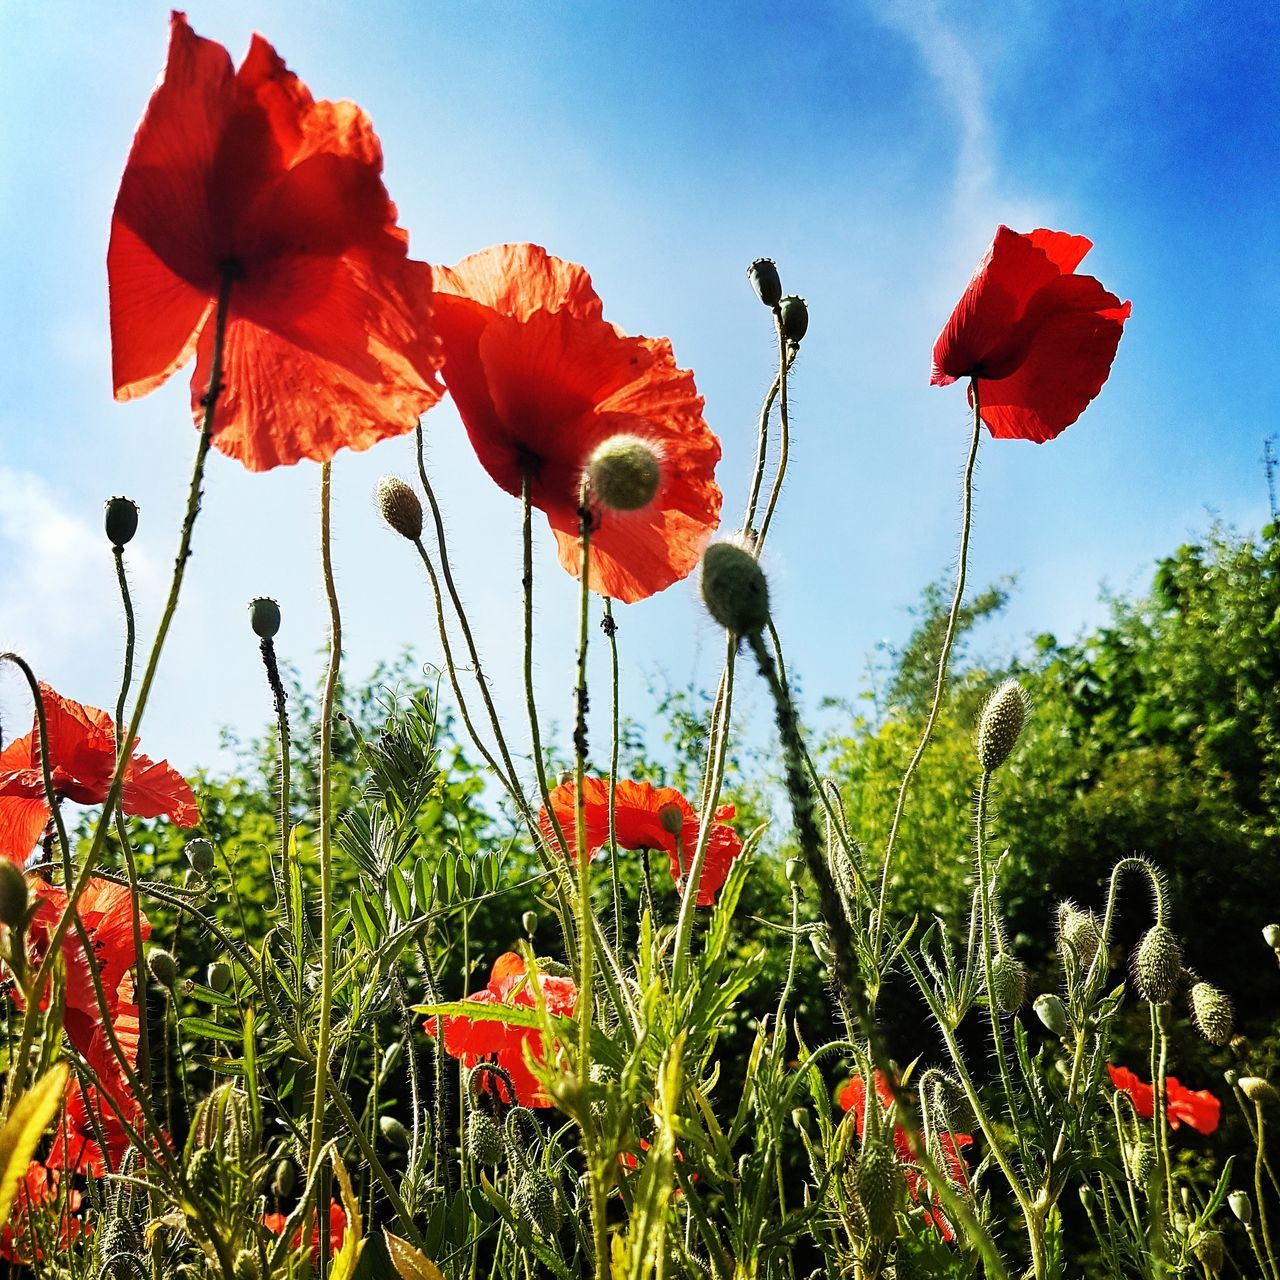 growth, flower, red, poppy, beauty in nature, nature, plant, field, fragility, petal, freshness, day, outdoors, flower head, no people, sky, blooming, low angle view, grass, close-up, tree